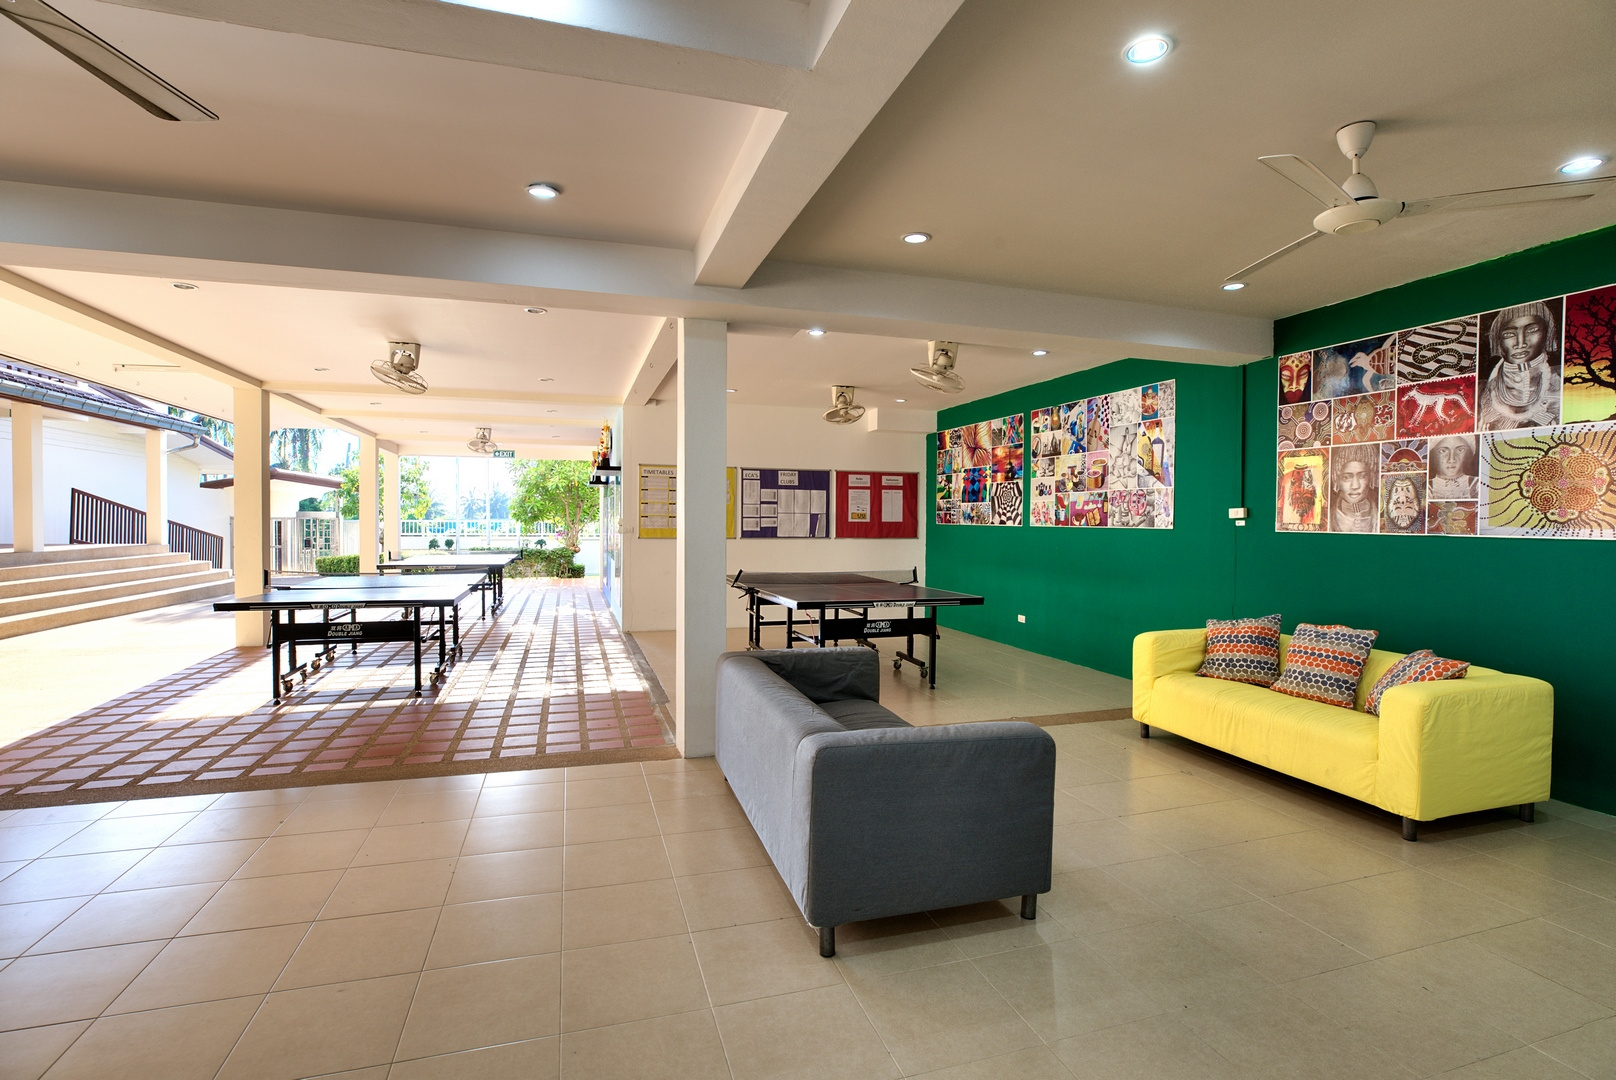 Senior Common Area